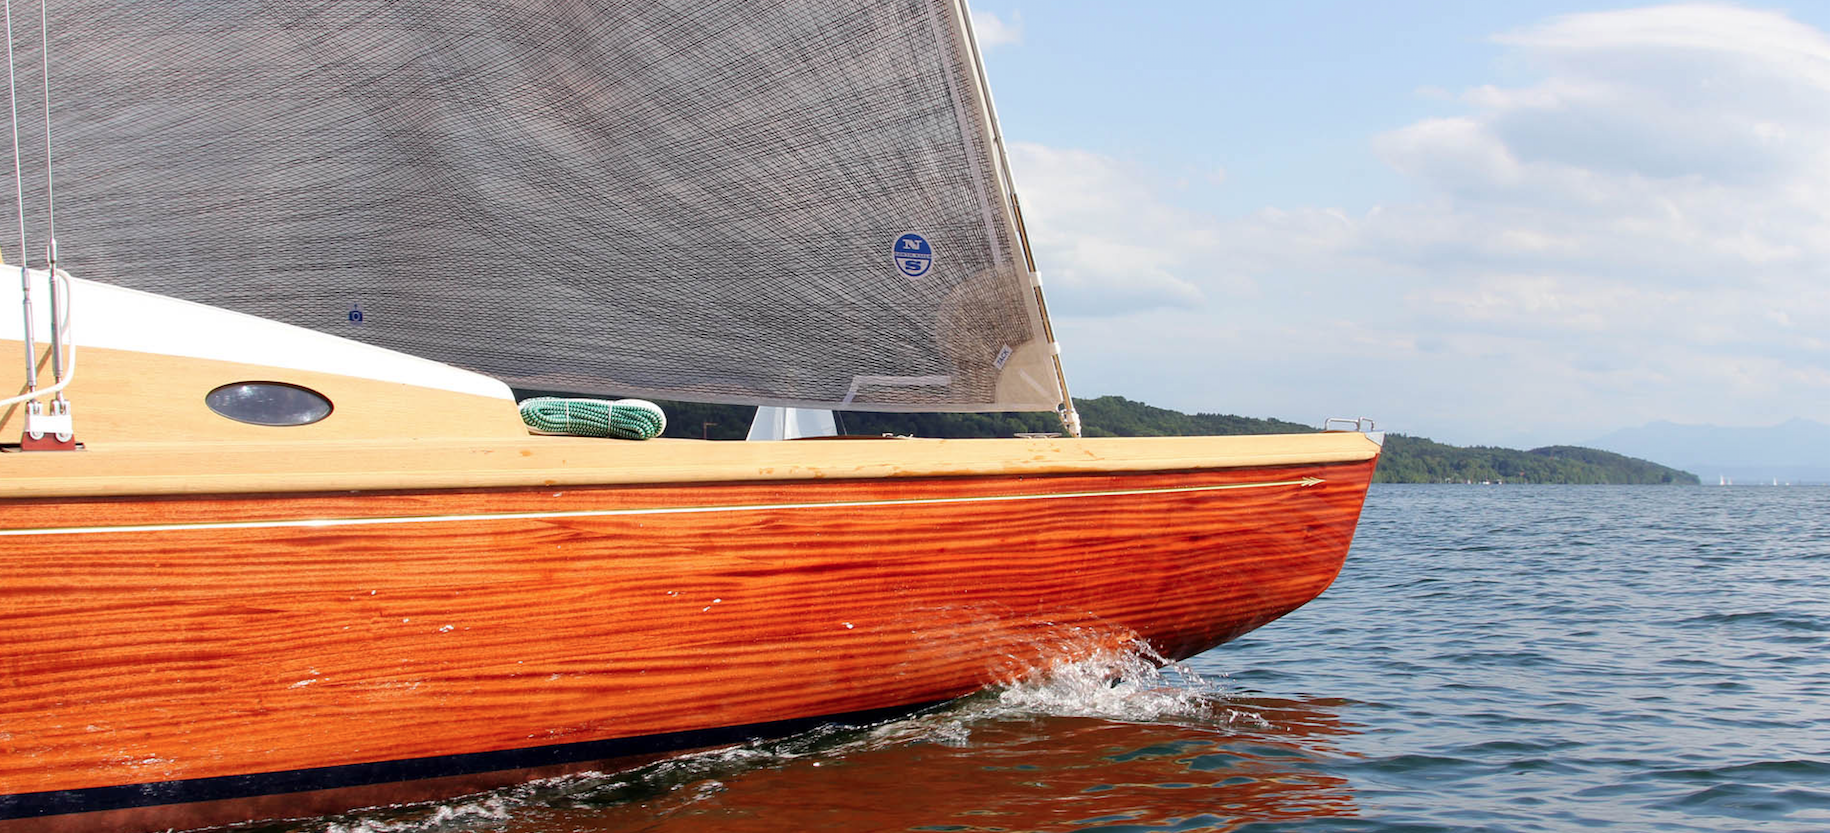 Want to know how sailing boats are built? The Glas Family in Possenhofen builds the lakes fastest boats since 1924.